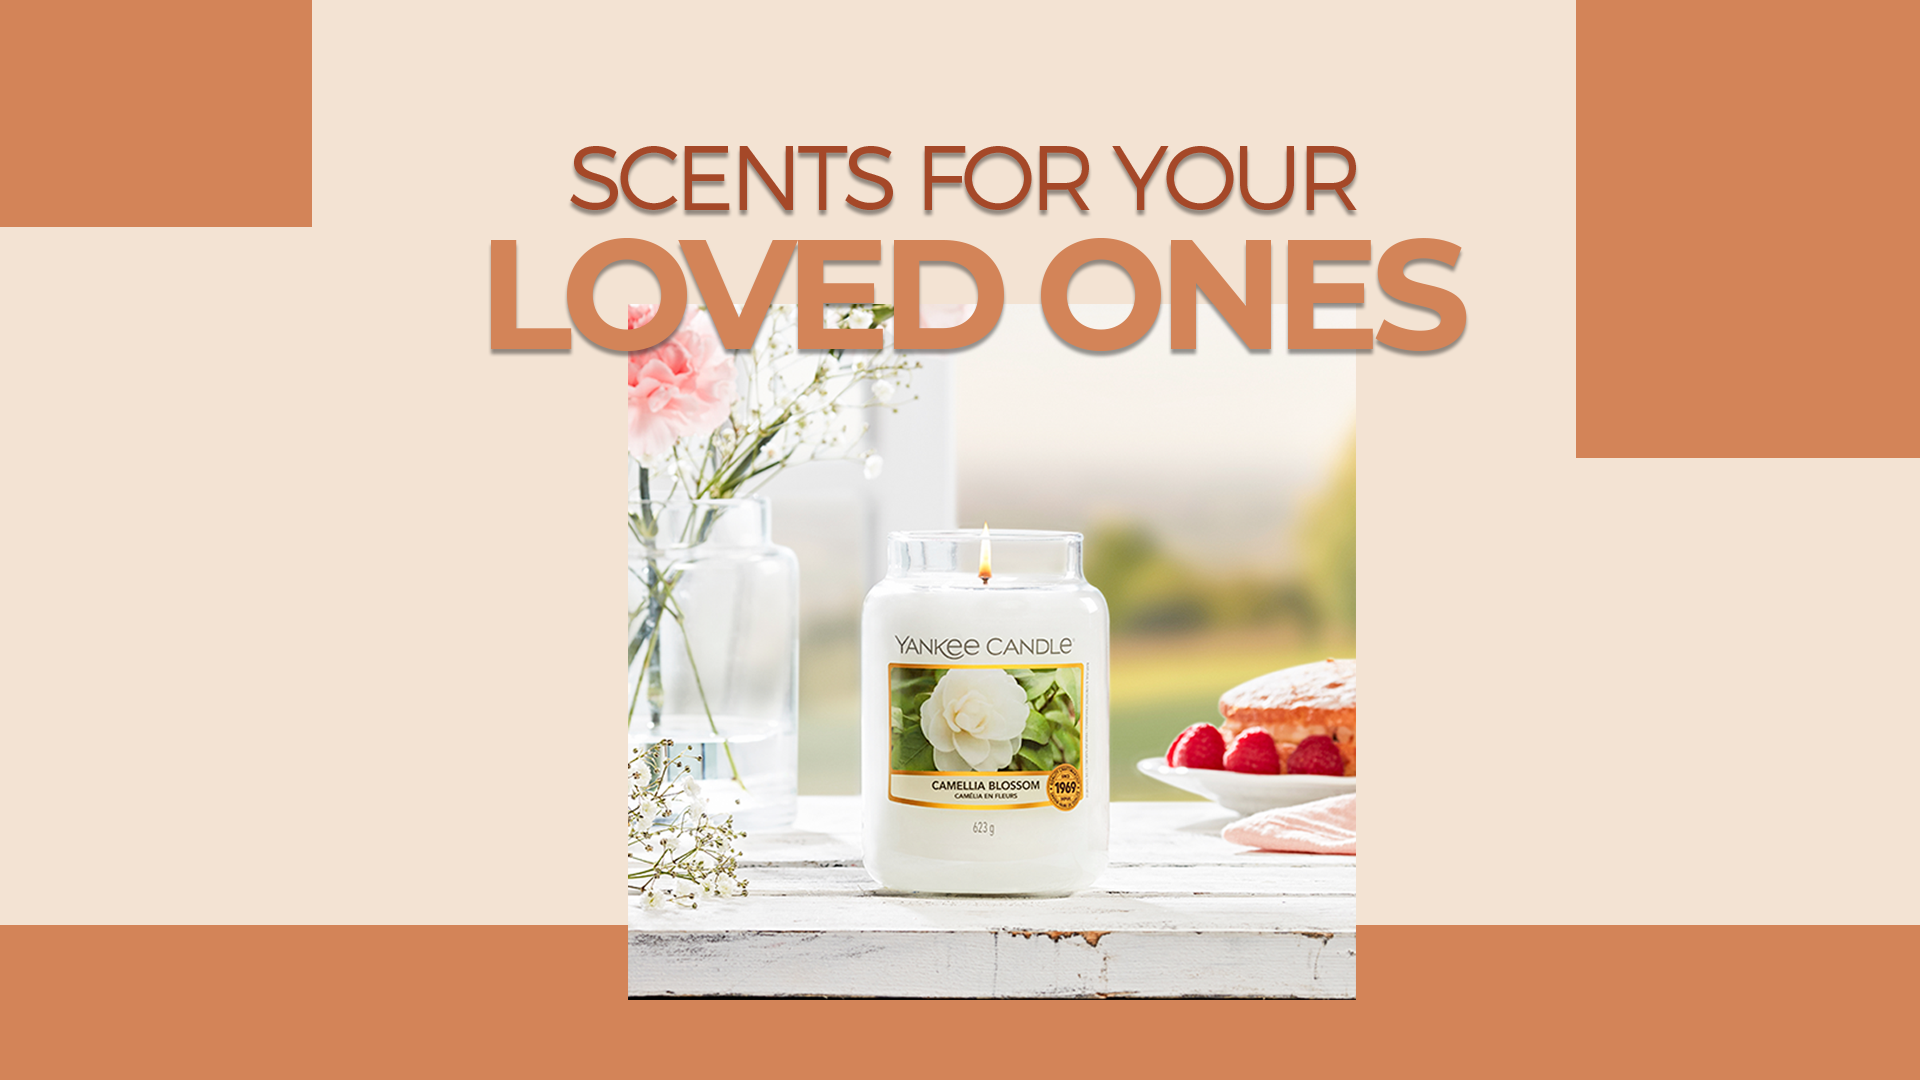 5 must-have scented candles to rekindle your fondest memories with your loved ones